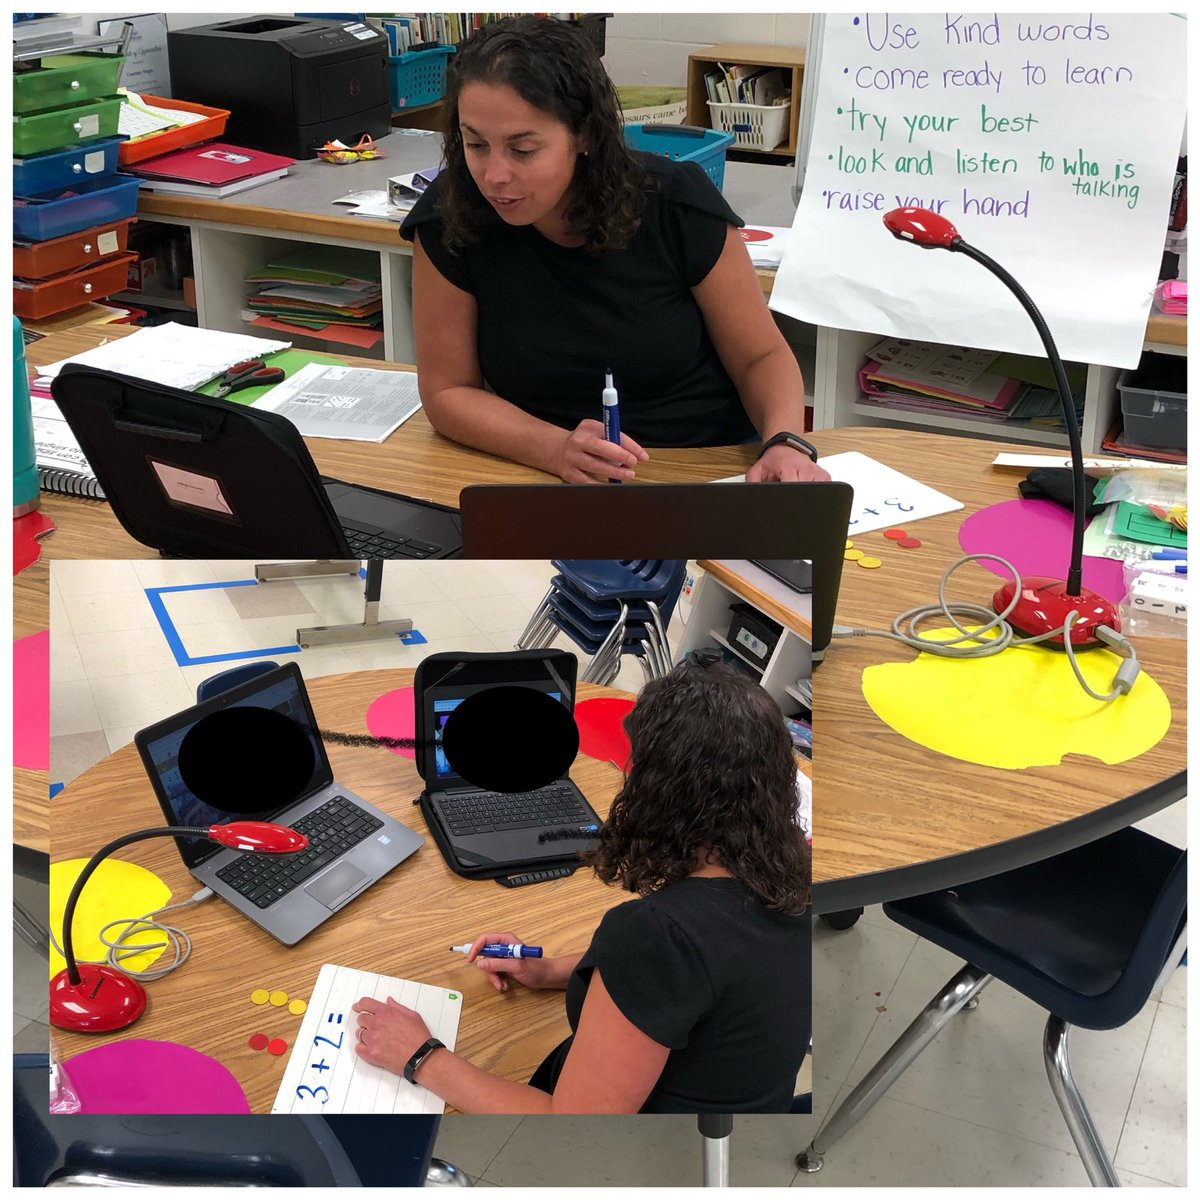 So much going on @LinkhornParkES from #math to #languagearts to getting ready for #f2f Nothing can stop us! @vbschools @KScarbs @allyinvb @TechTeachVB #vbits #VBAlwaysLearning #everychildeveryday  #allin https://t.co/u2yzIMvRdG